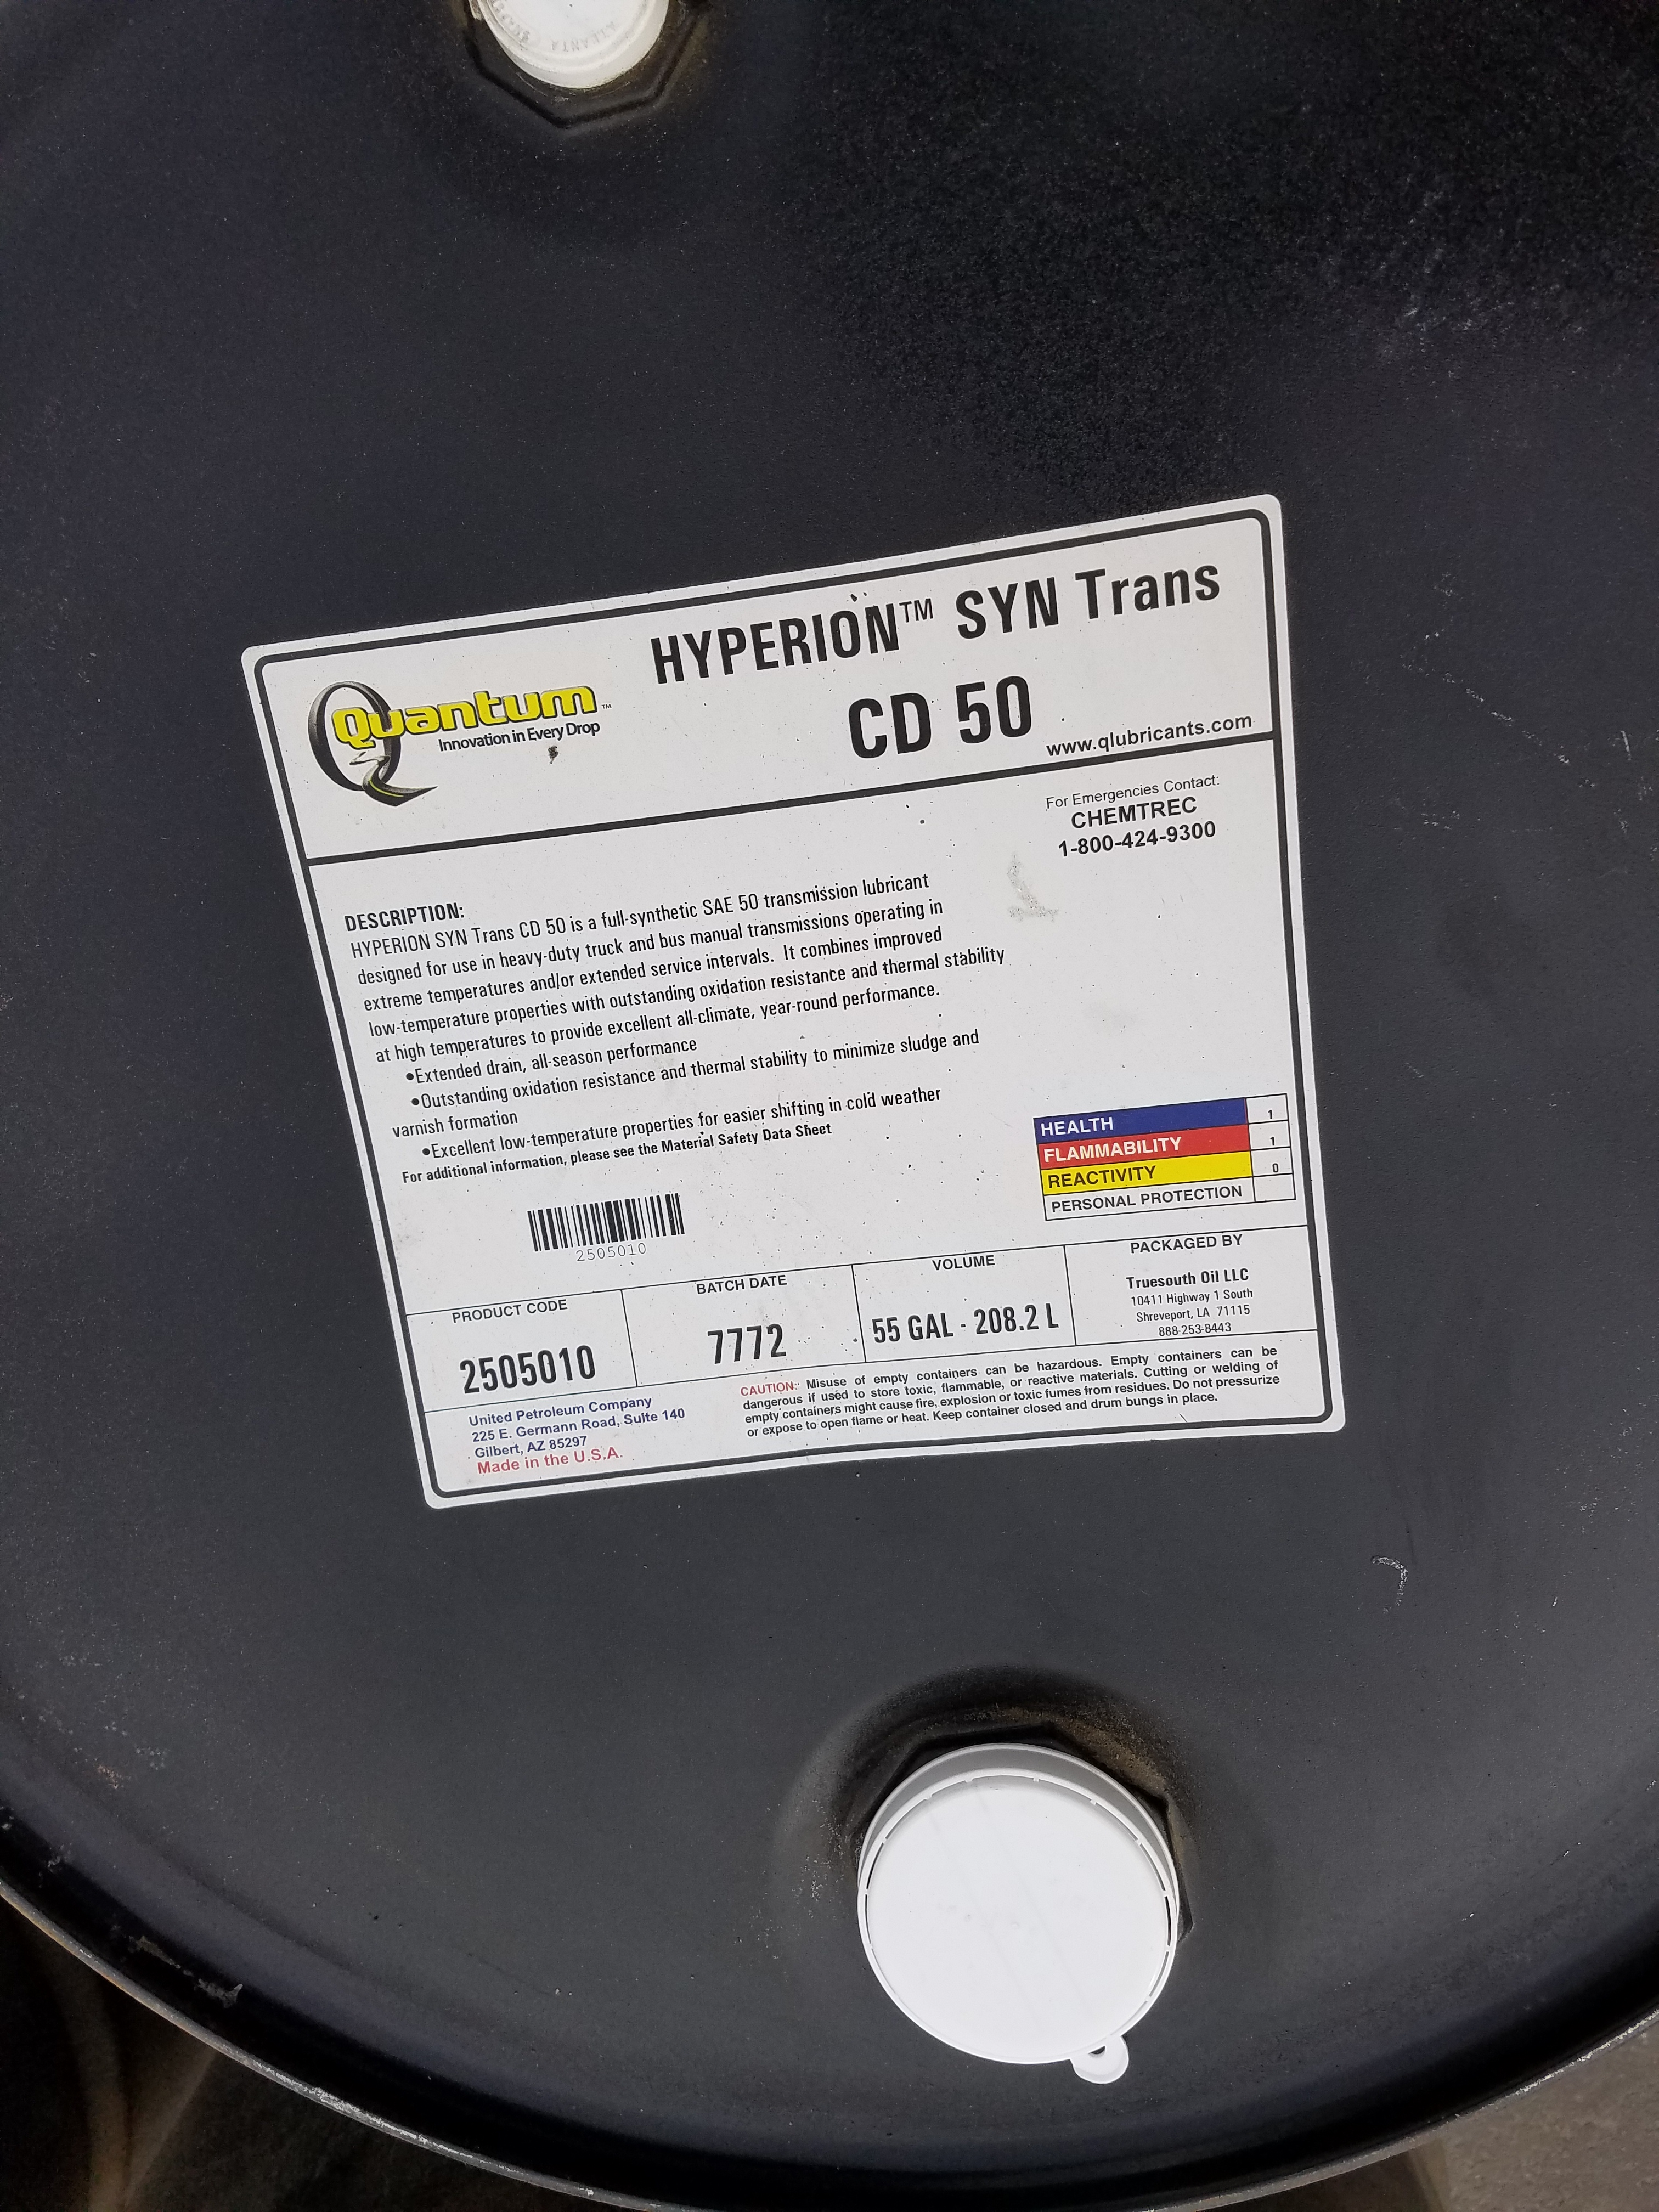 Auction !!! Synthetic Transmission Oil Open for Bid - E R  Vine & Sons